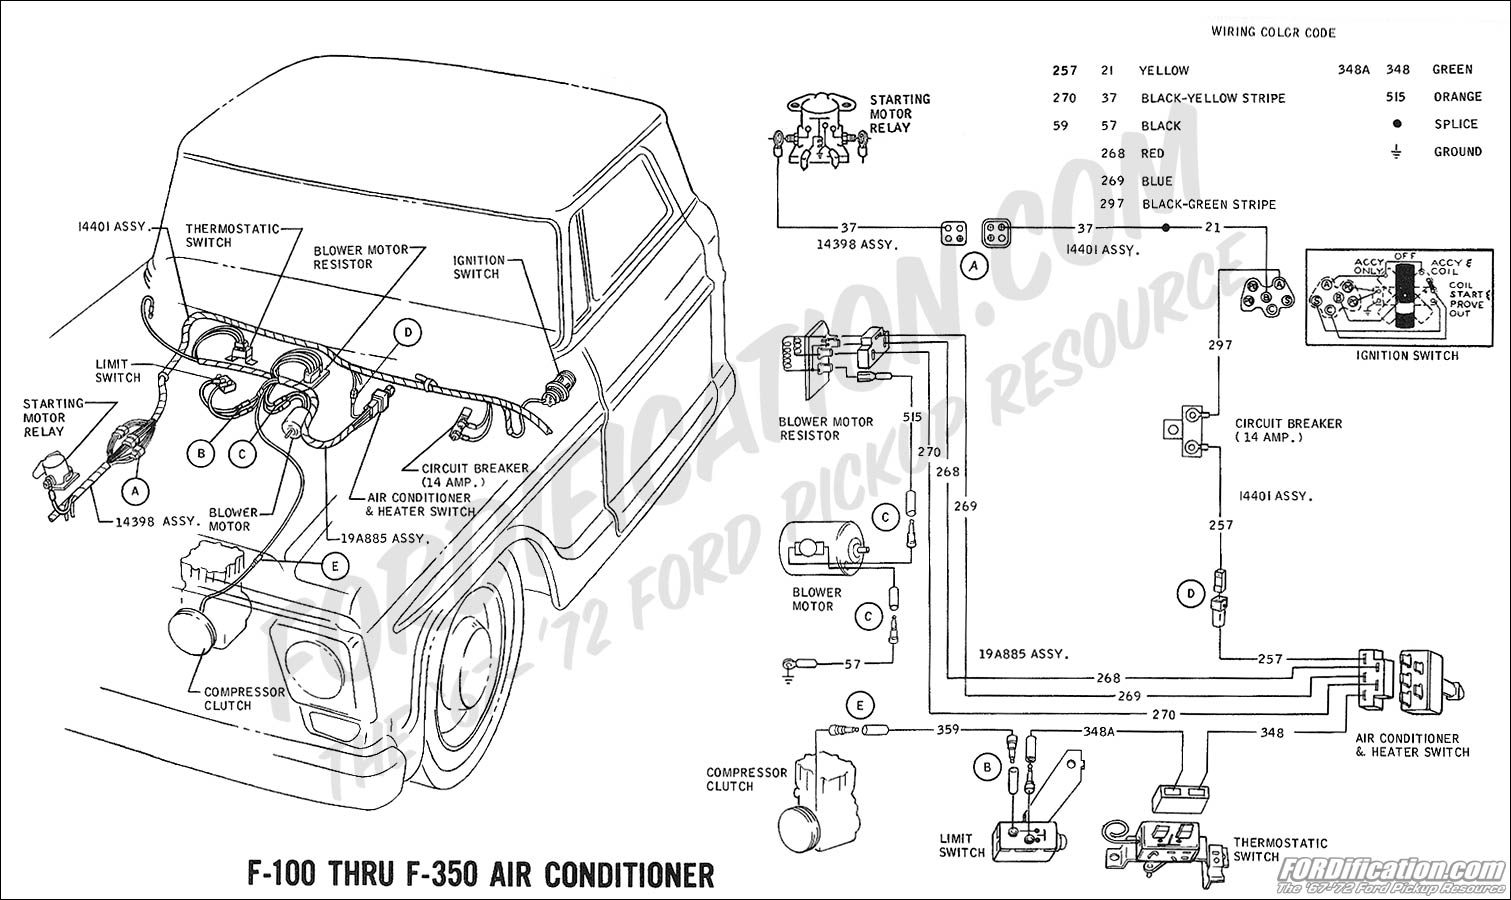 1989 Ford Ranger Engine Diagram Manual Of Wiring 1999 Ac Just Data Rh Ag Skiphire Co Uk 1988 29